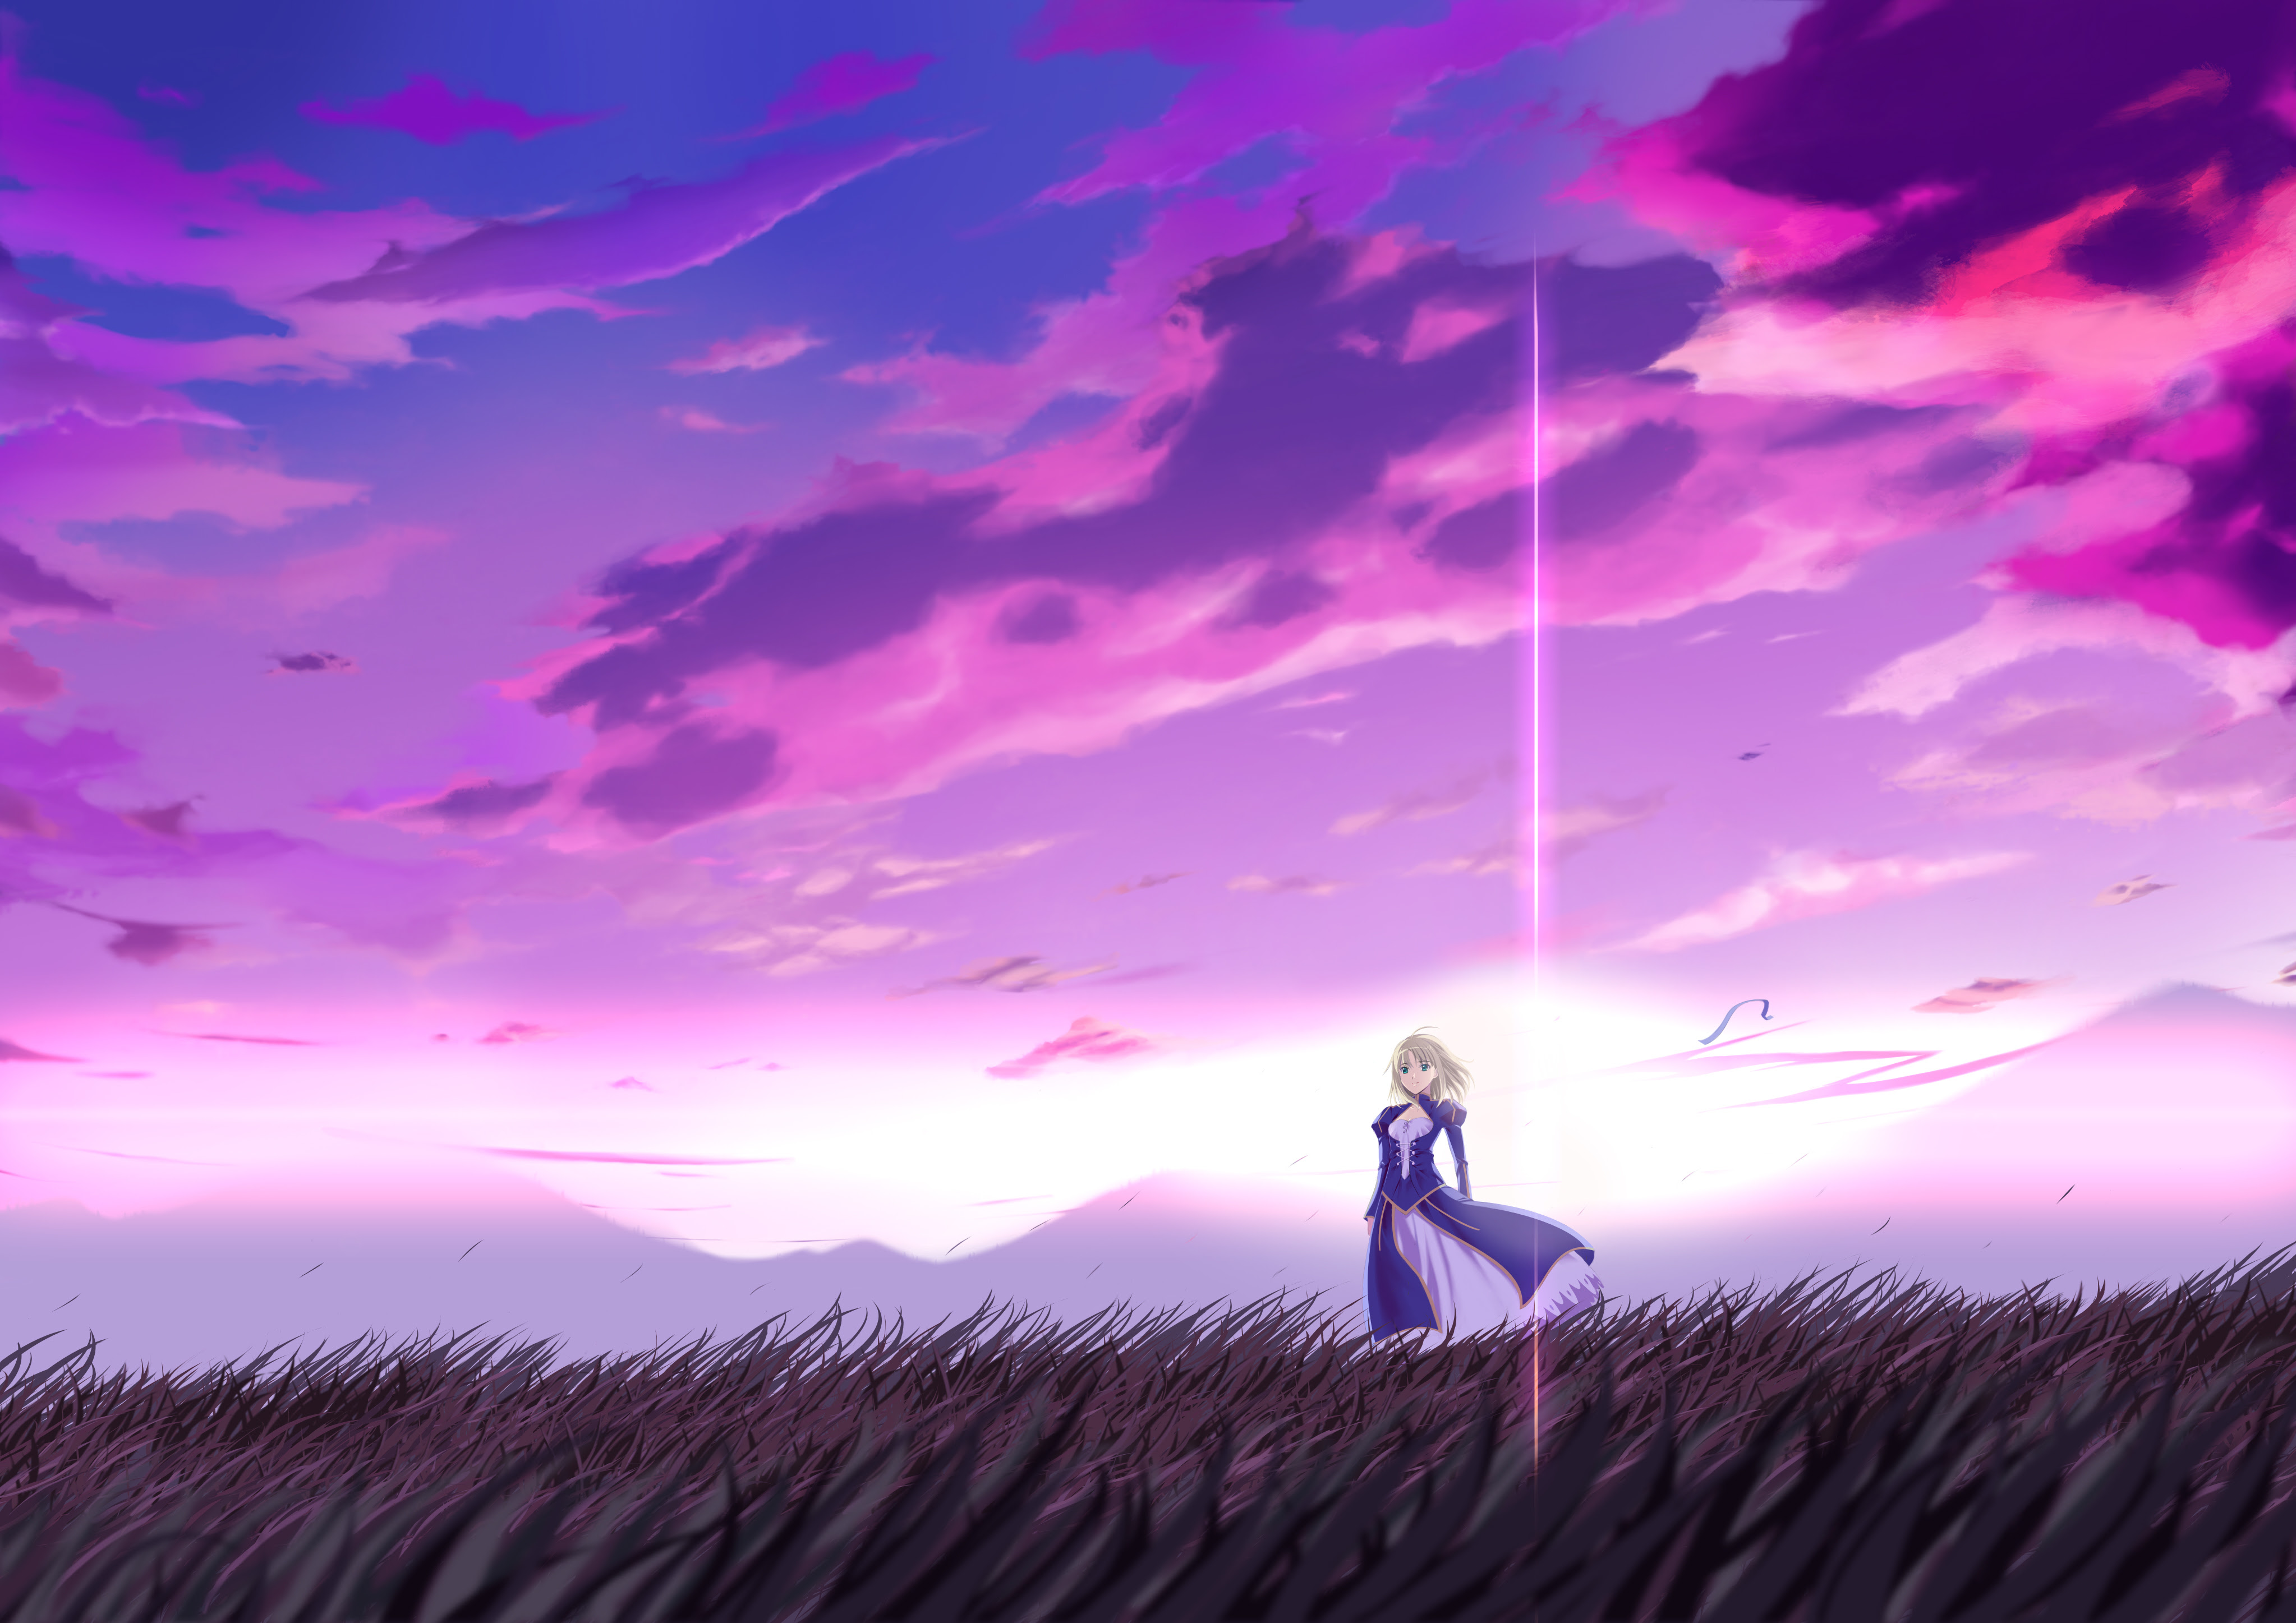 Anime Fate Stay Night 4k, HD Anime, 4k Wallpapers, Images ...